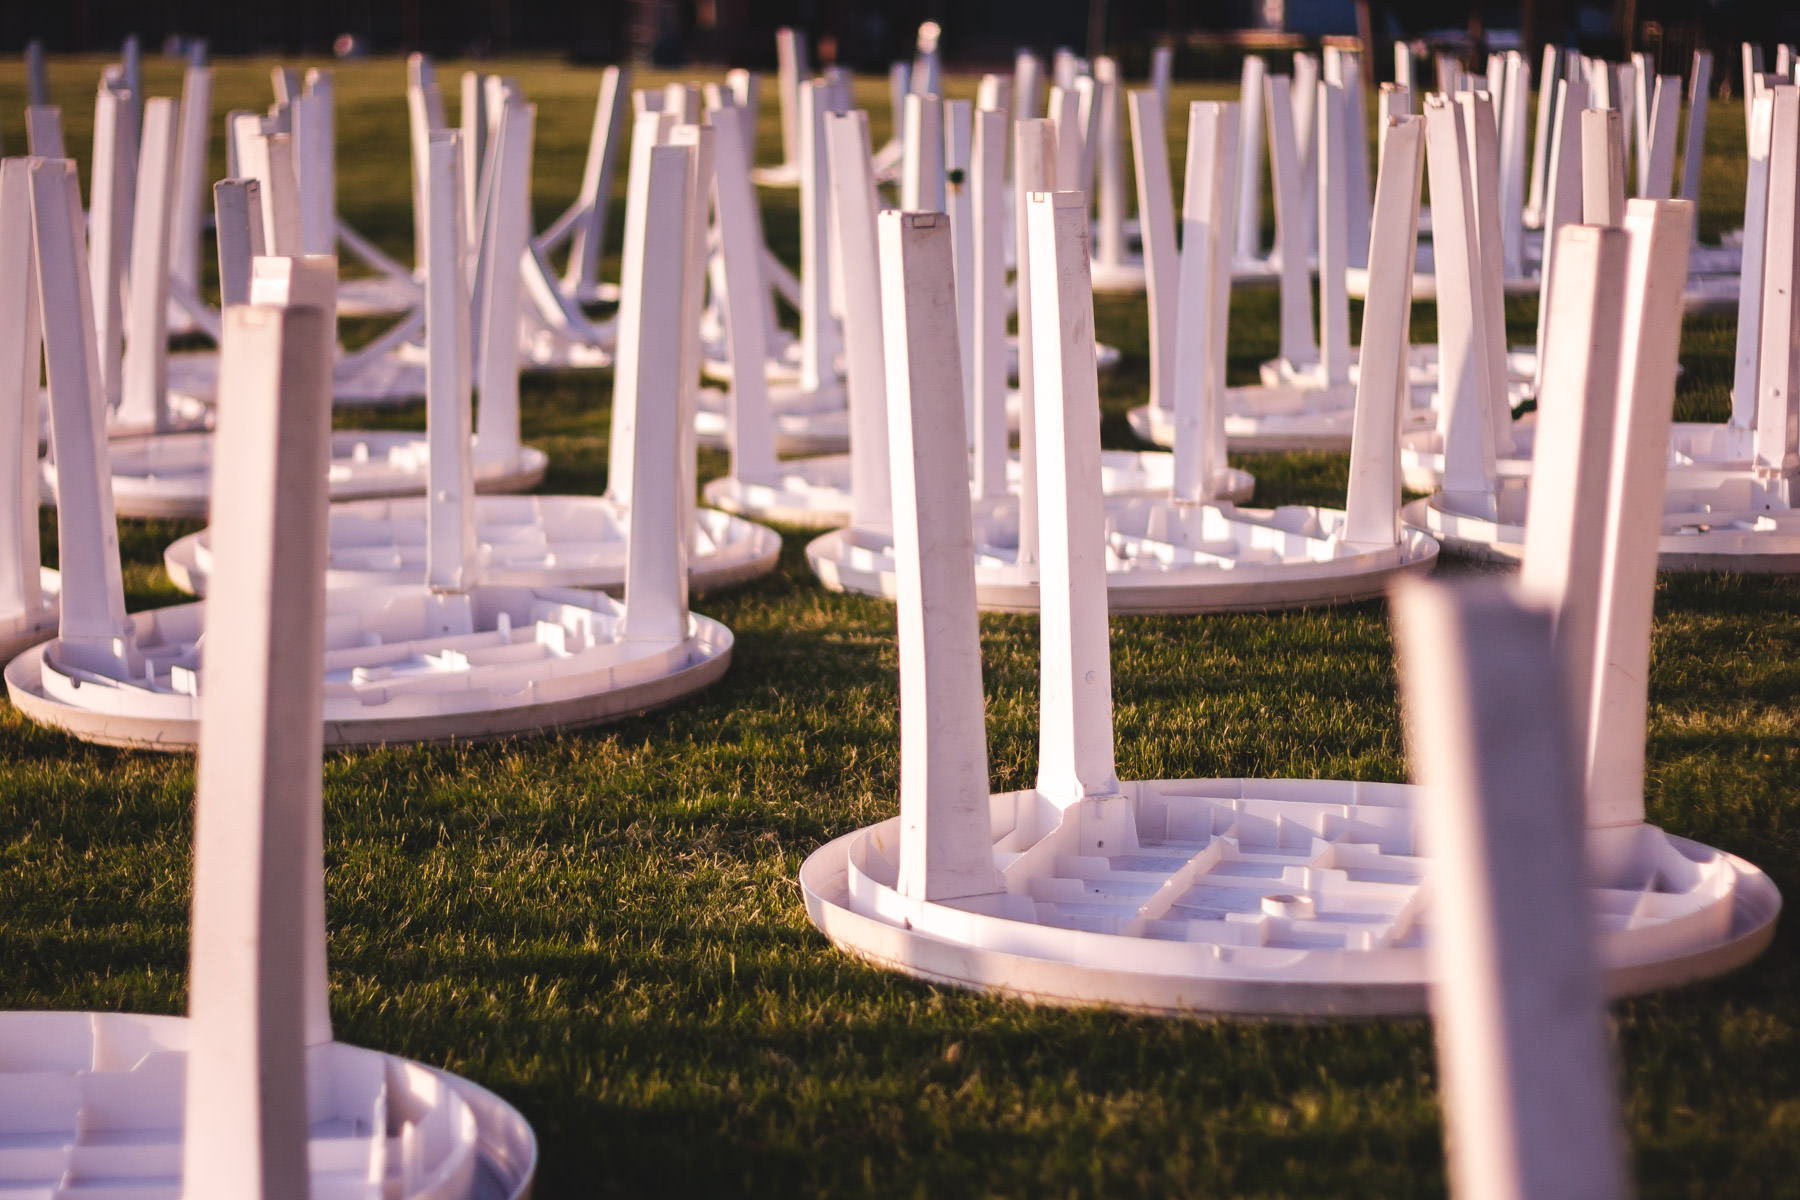 Tables laid out on the lawn at Addison Circle Park in preparation of Taste Addison.